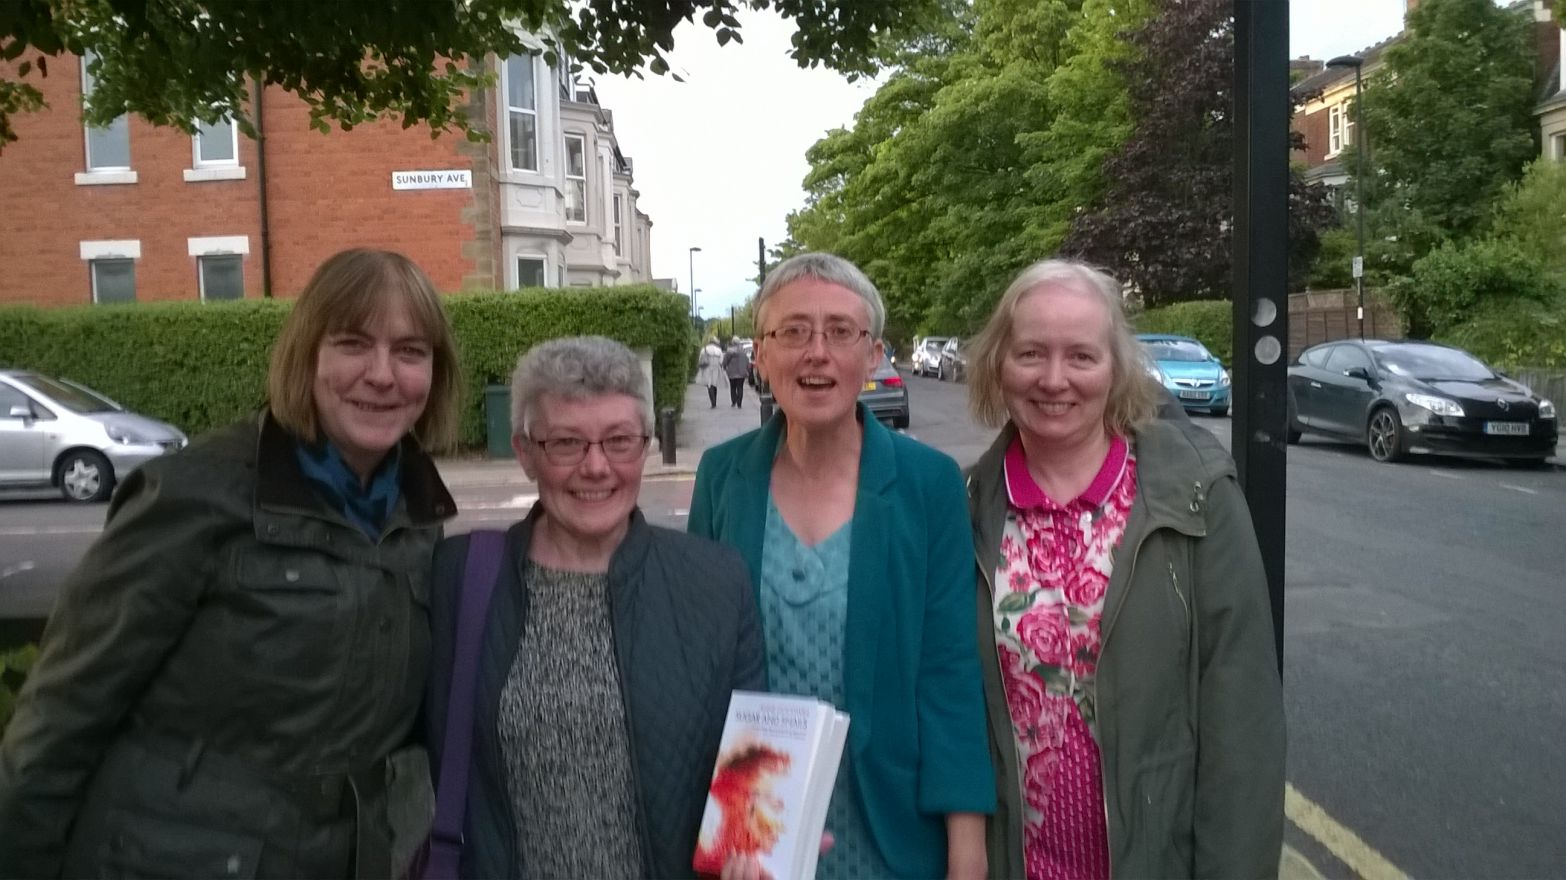 Sheila Gahagan, Janet McElwee, Anne Goodwin and Susan Heaslip at the launch of Anne's first novel